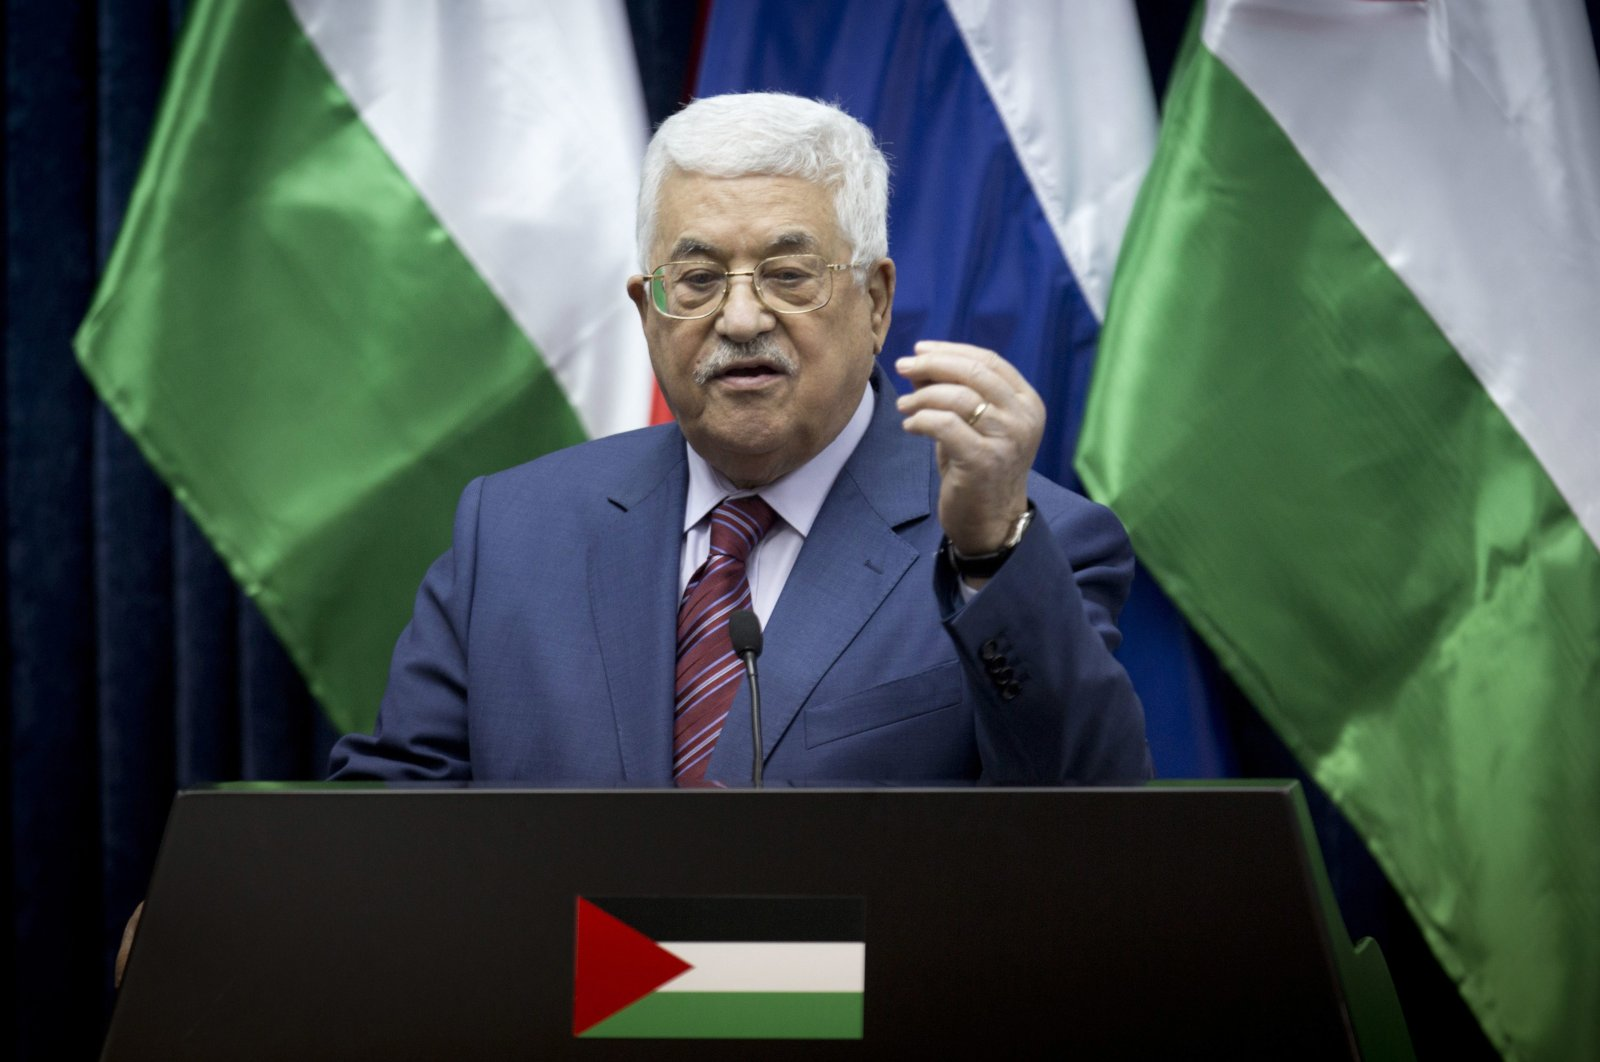 Palestinian President Mahmoud Abbas speaks during a press conference in the occupied West Bank city of Jericho, Palestine, Nov. 11, 2016. (AP Photo)